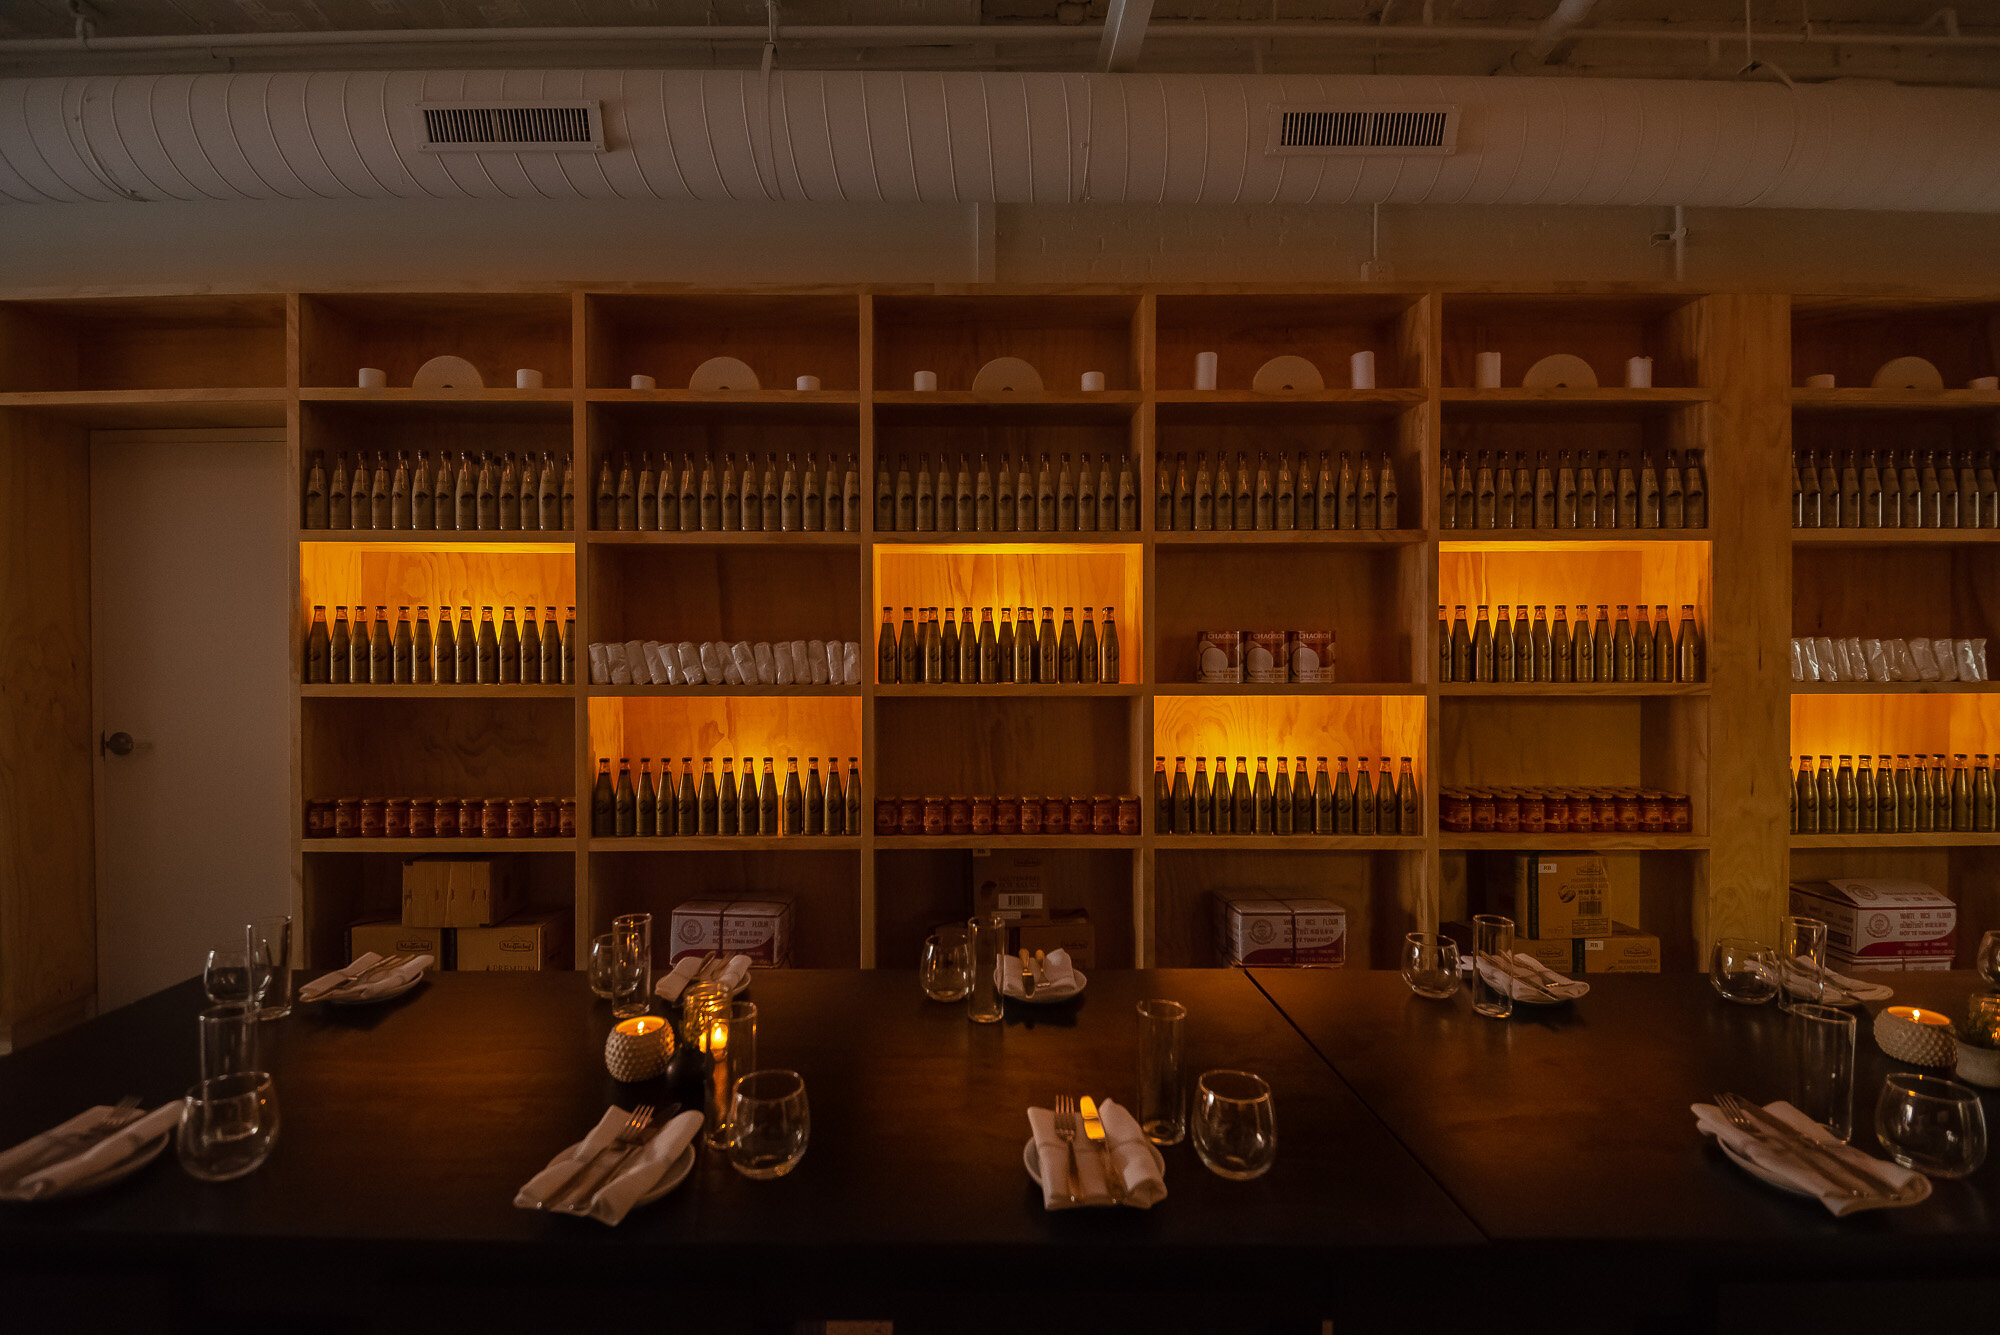 prince_concepts_the_pantry_dinner_event-1.jpg